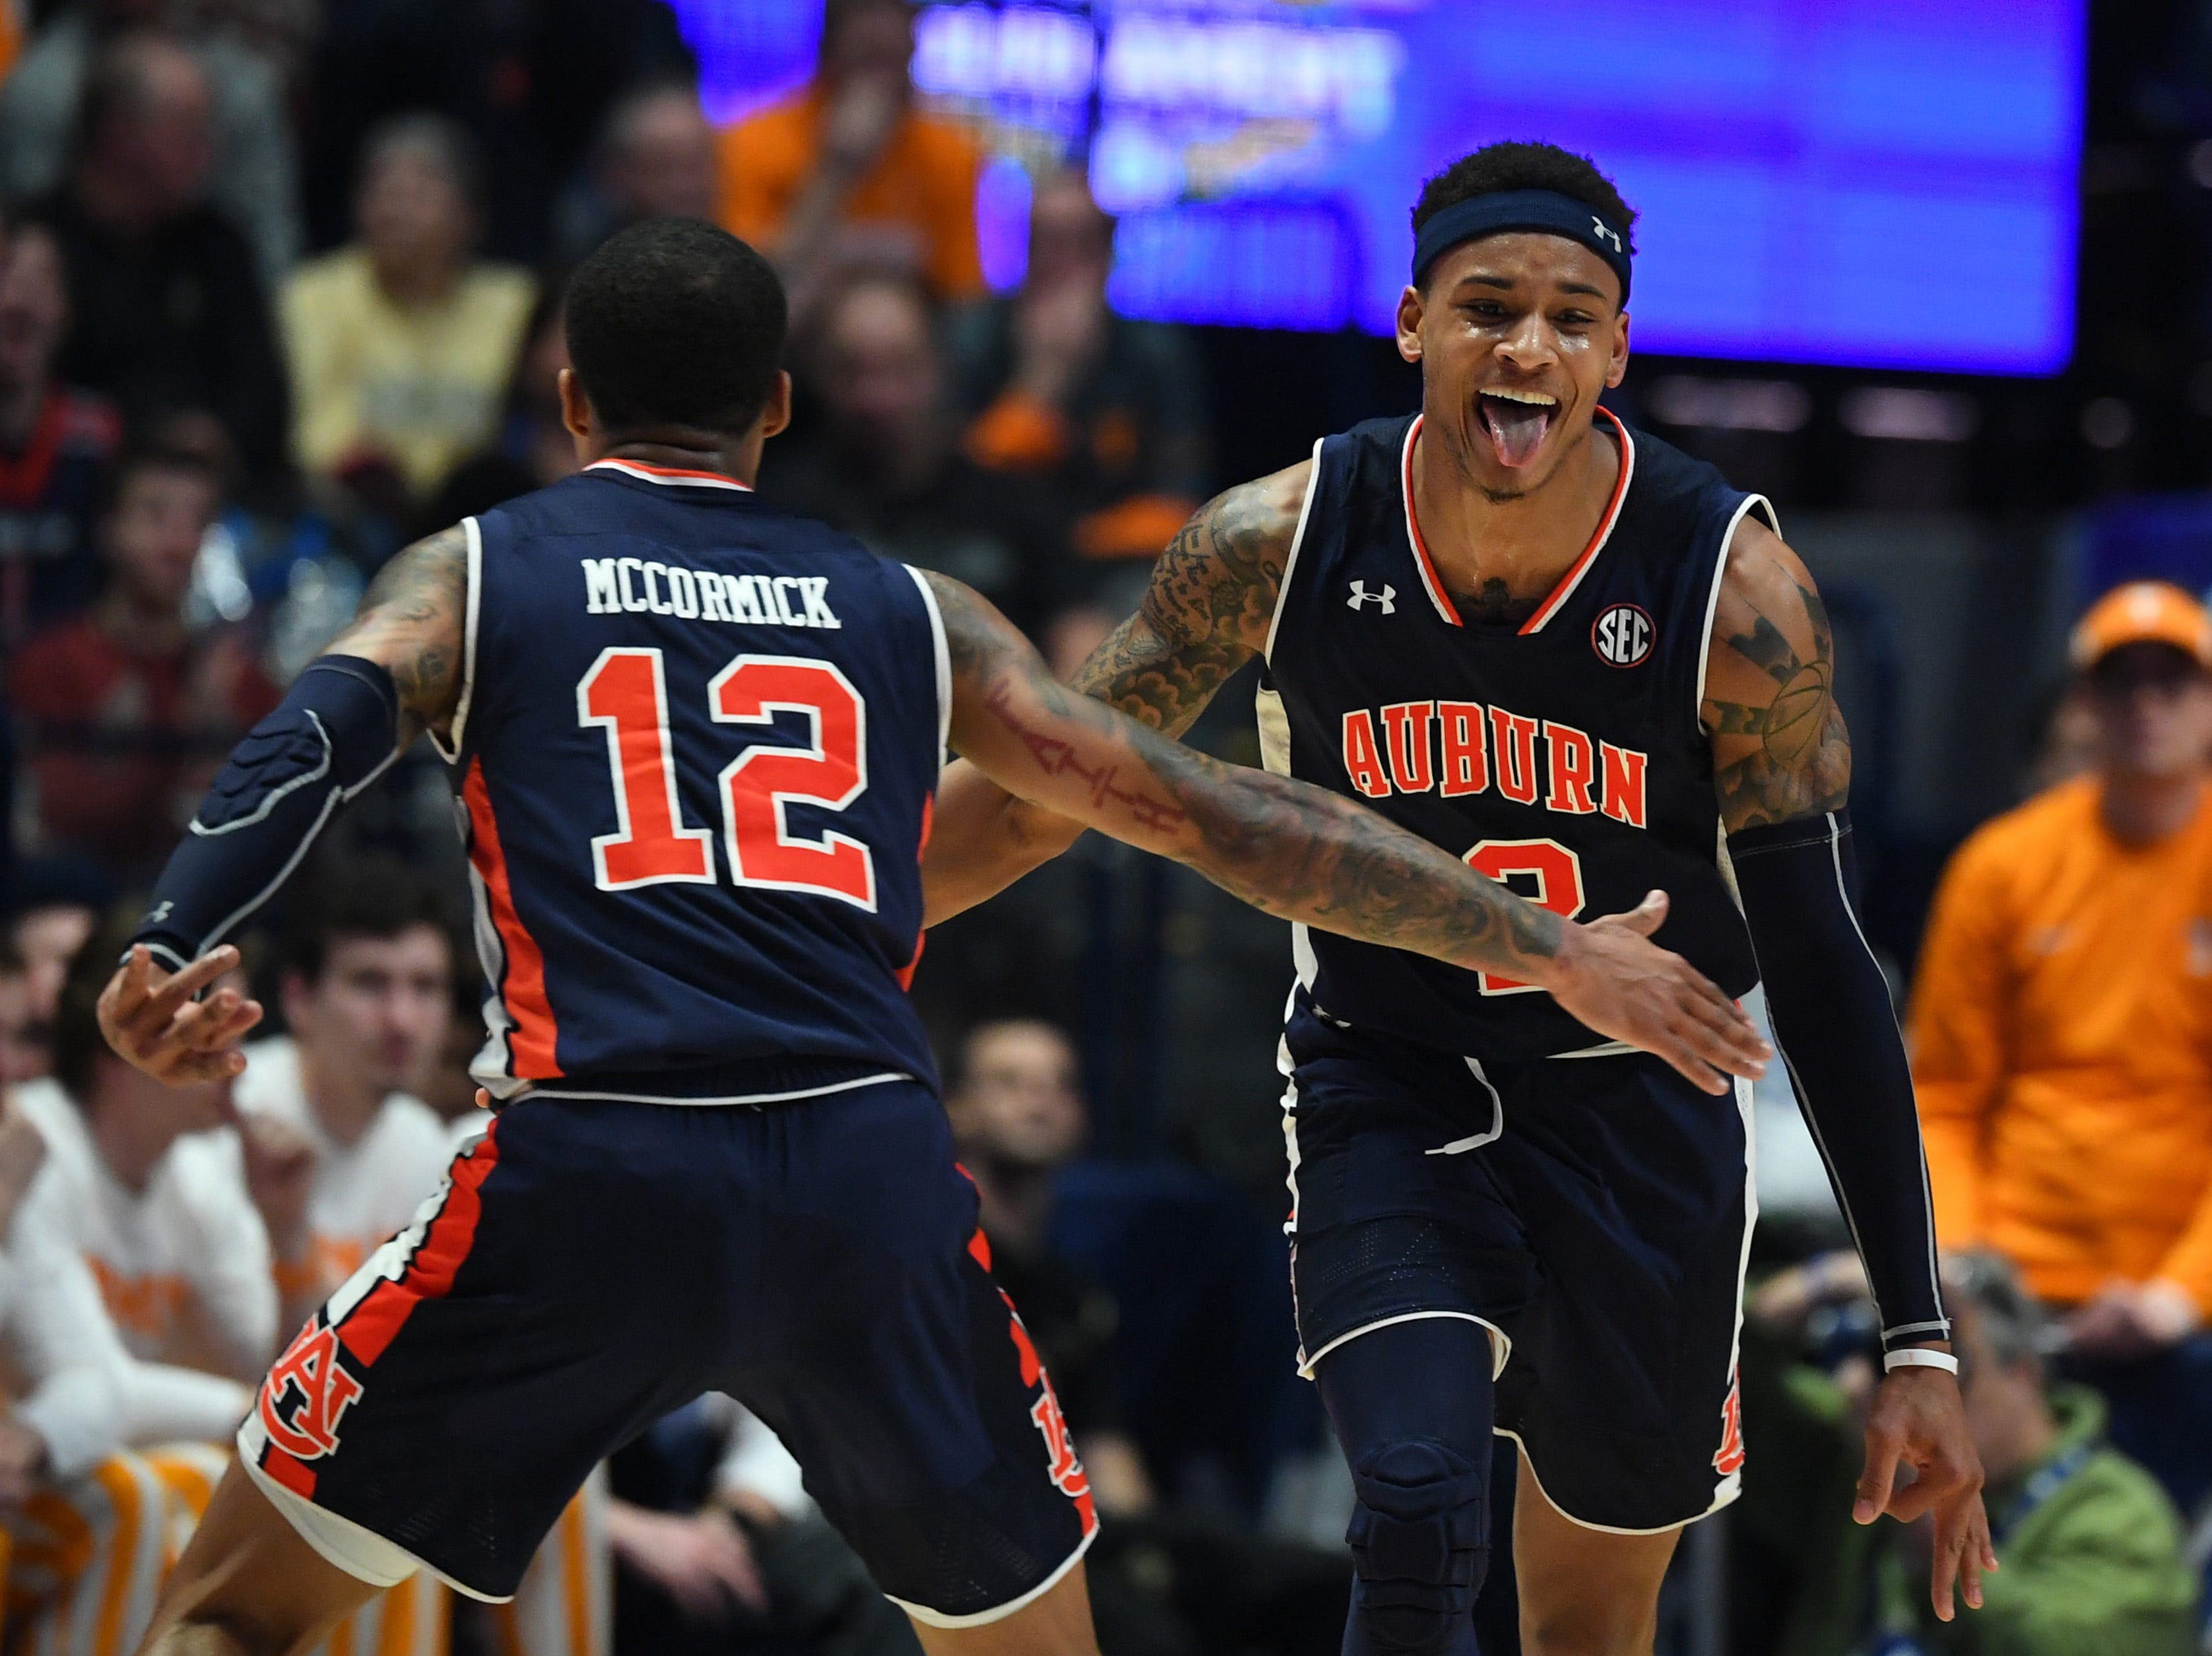 Mar 17, 2019; Nashville, TN, USA; Auburn Tigers guard Bryce Brown (2) and Auburn Tigers guard J'Von McCormick (12) celebrate after a basket during the first half against the Tennessee Volunteers  in the SEC conference tournament championship game at Bridgestone Arena. Mandatory Credit: Christopher Hanewinckel-USA TODAY Sports